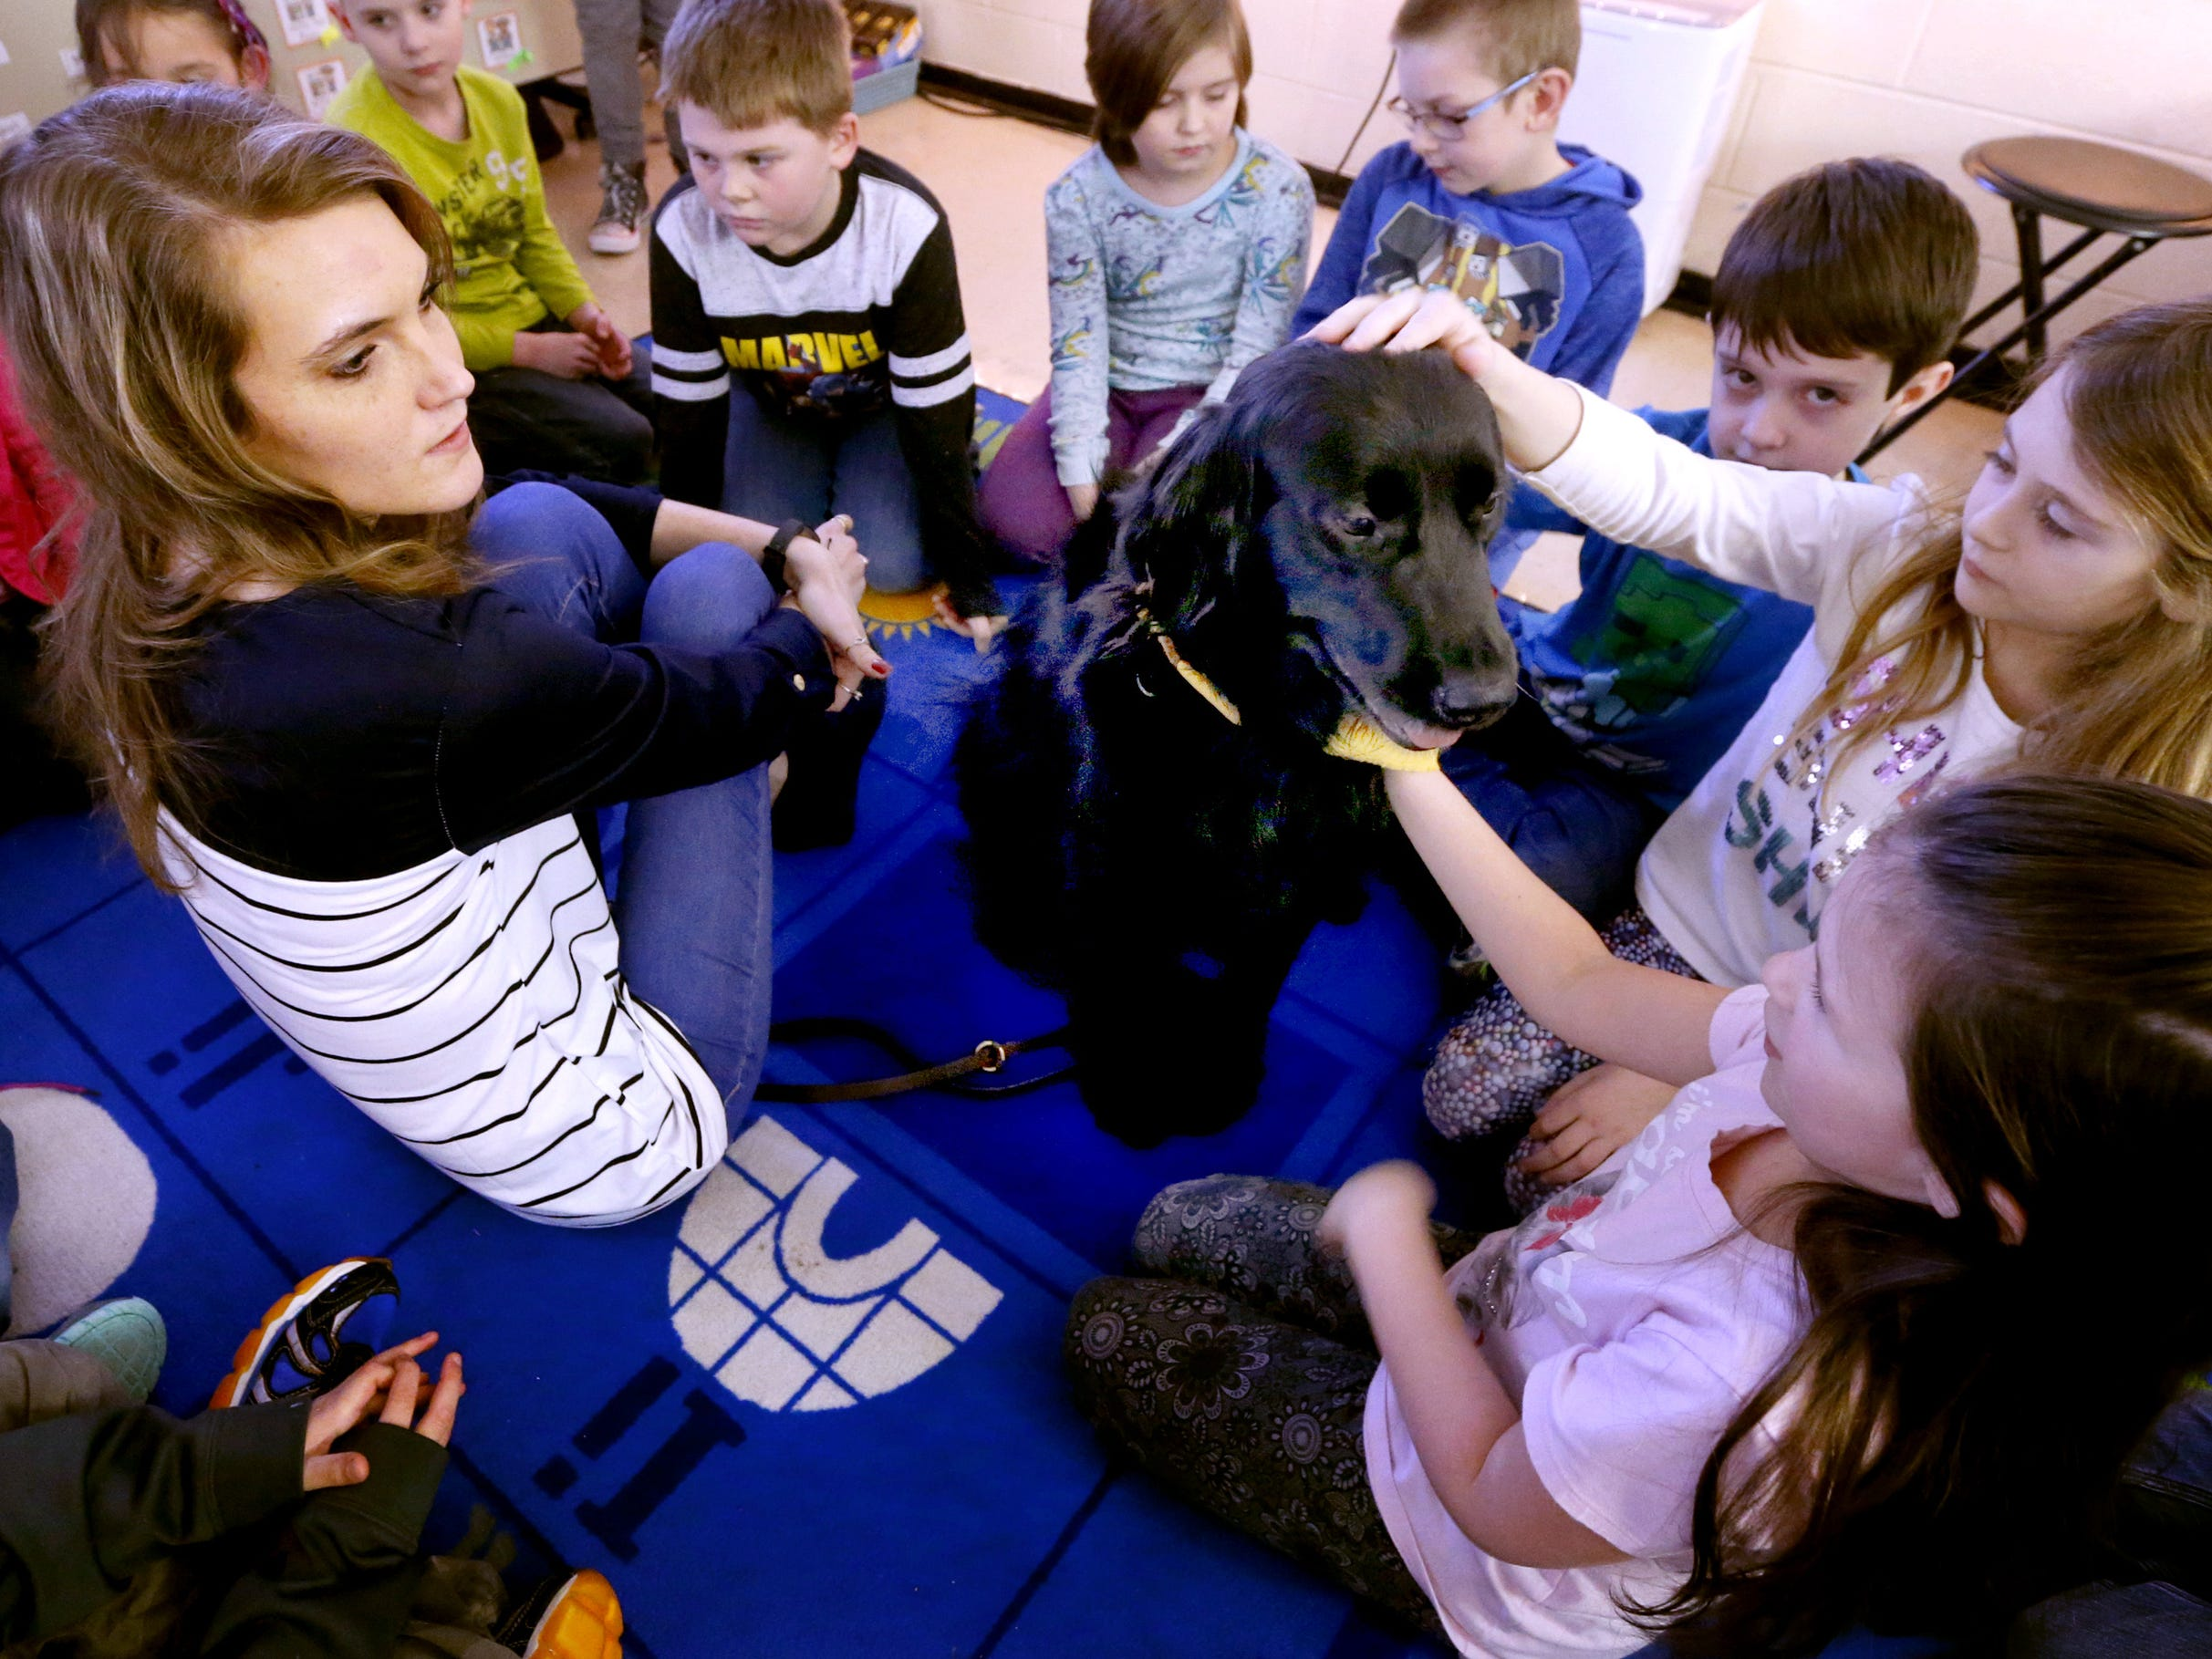 Paige Saylors a second grade teacher at Christiana Elementary, who is legally blind allows her class to gather to pet her service dog Inca on Wednesday, Jan. 24, 2018.